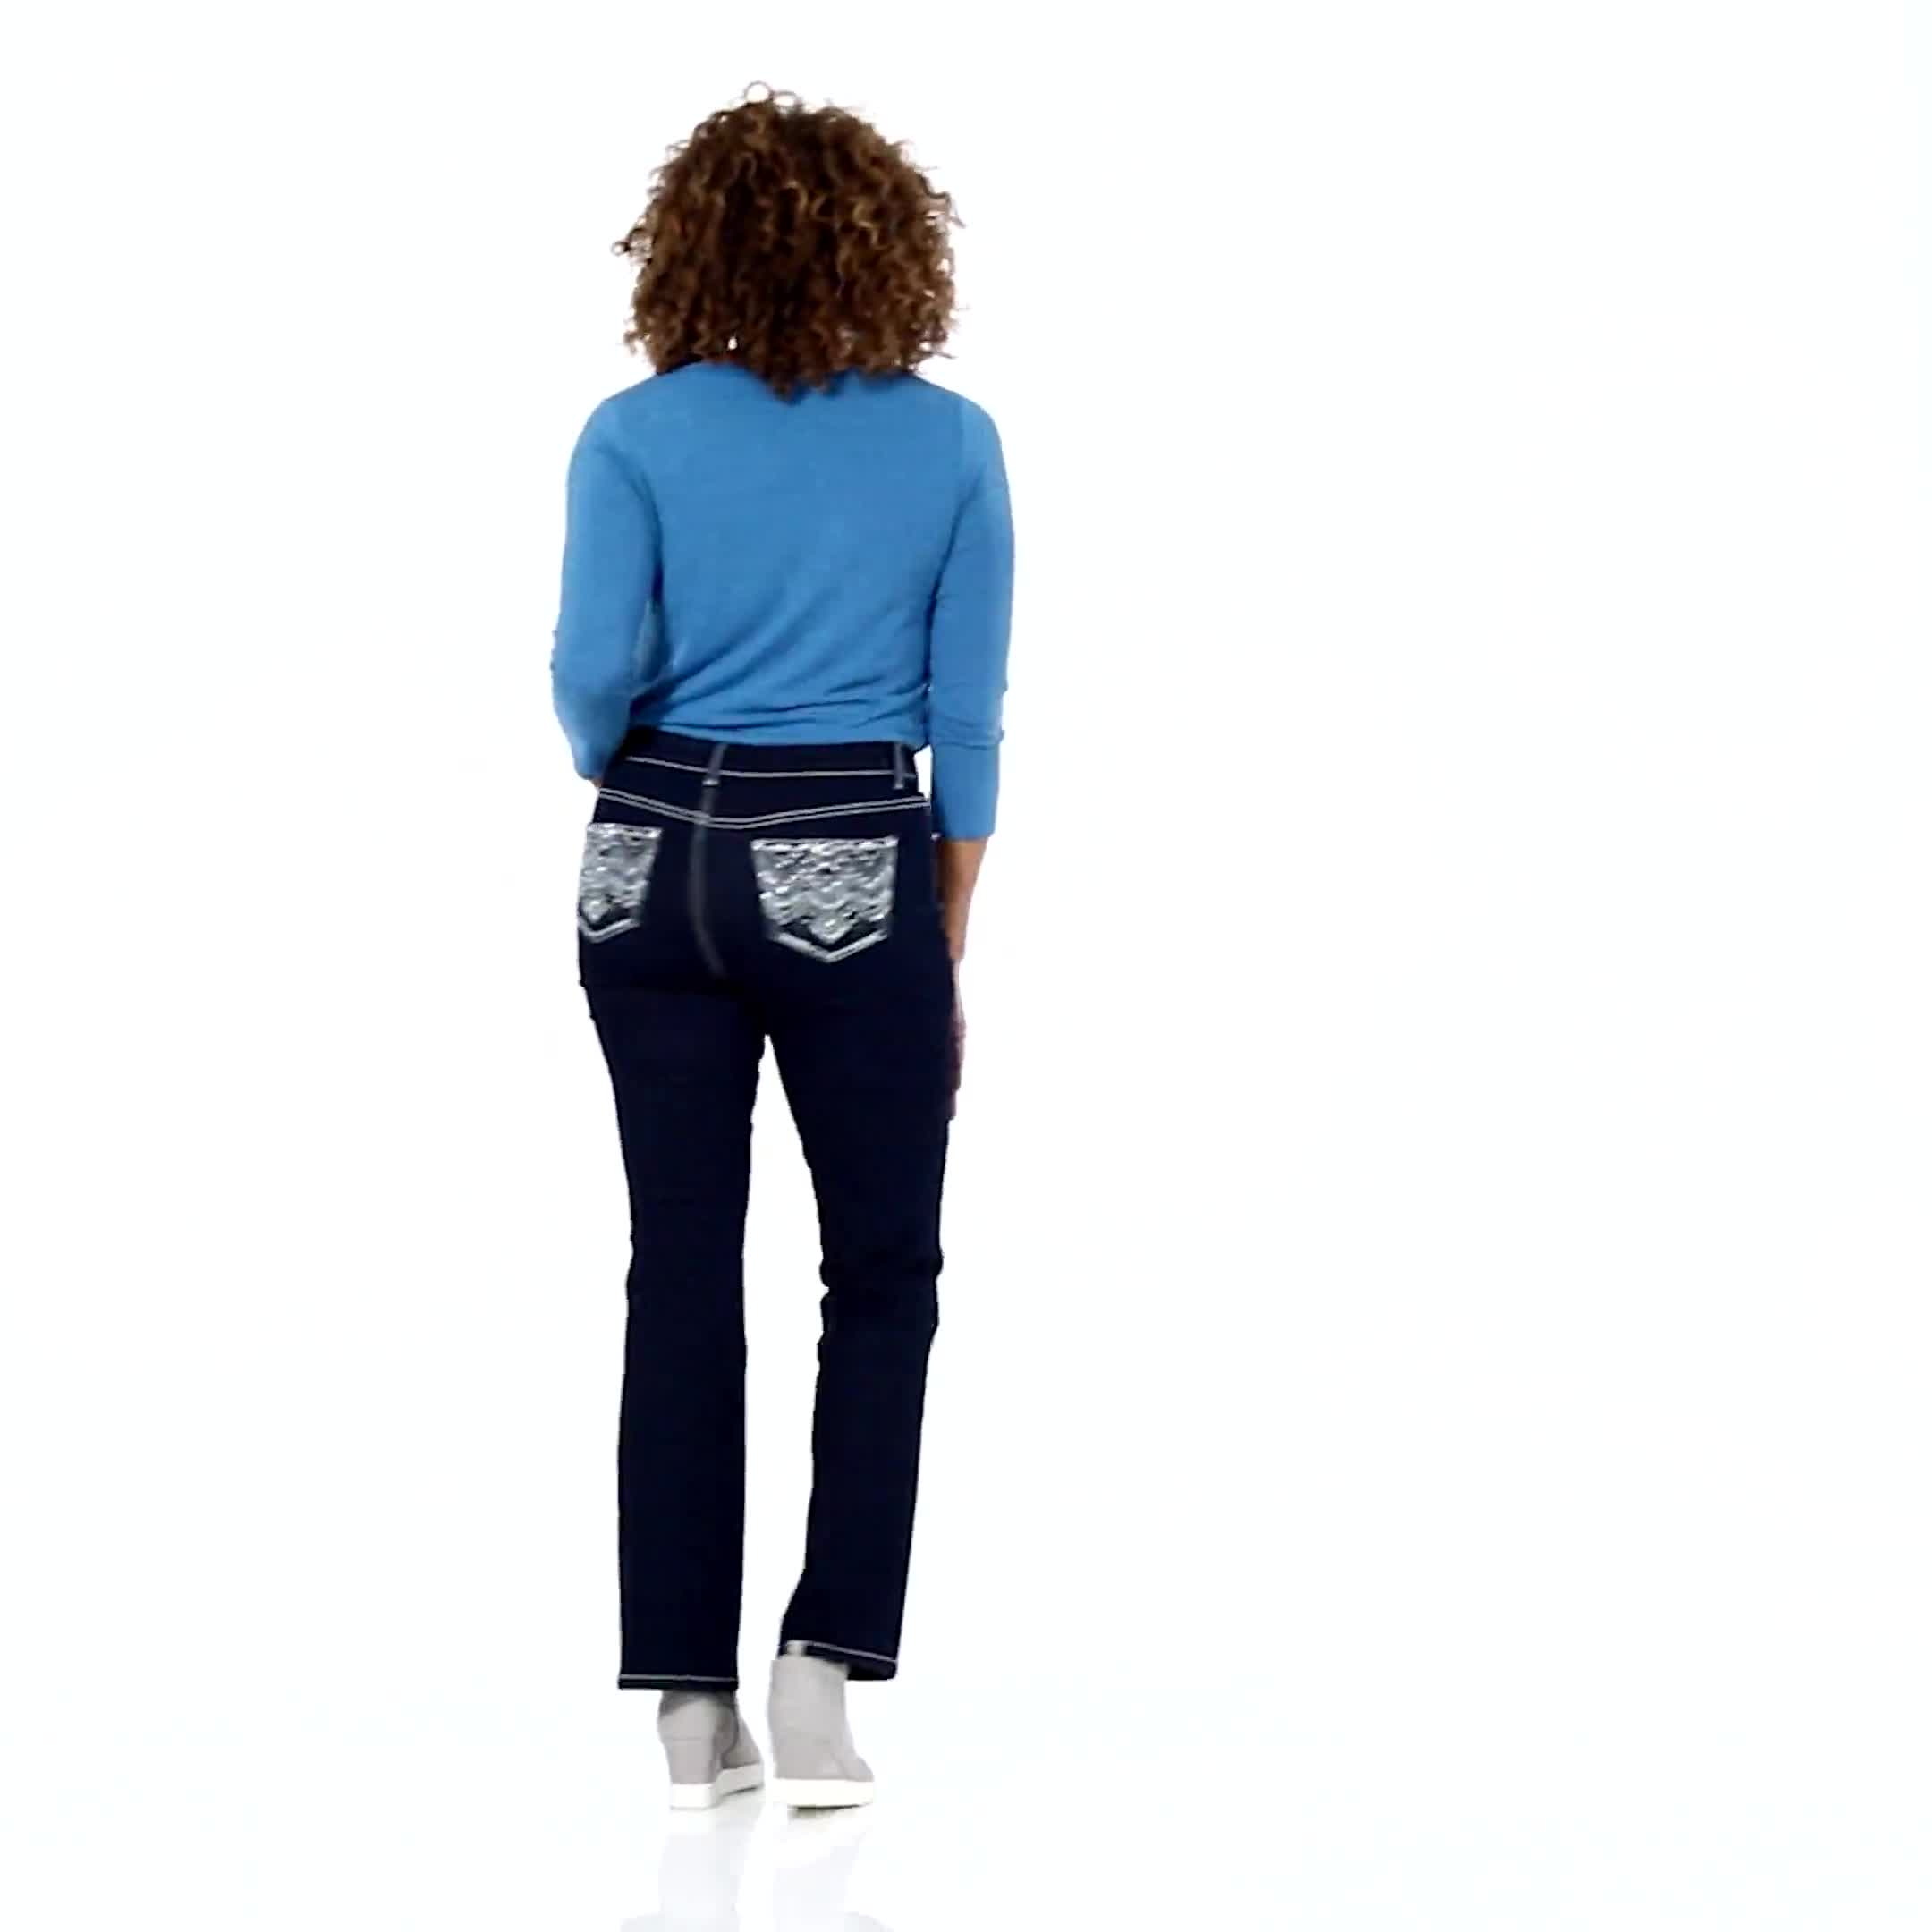 Westport Signature 5 Pocket  Bootcut Jean with Chevron Pattern Bling Back Pocket - Video